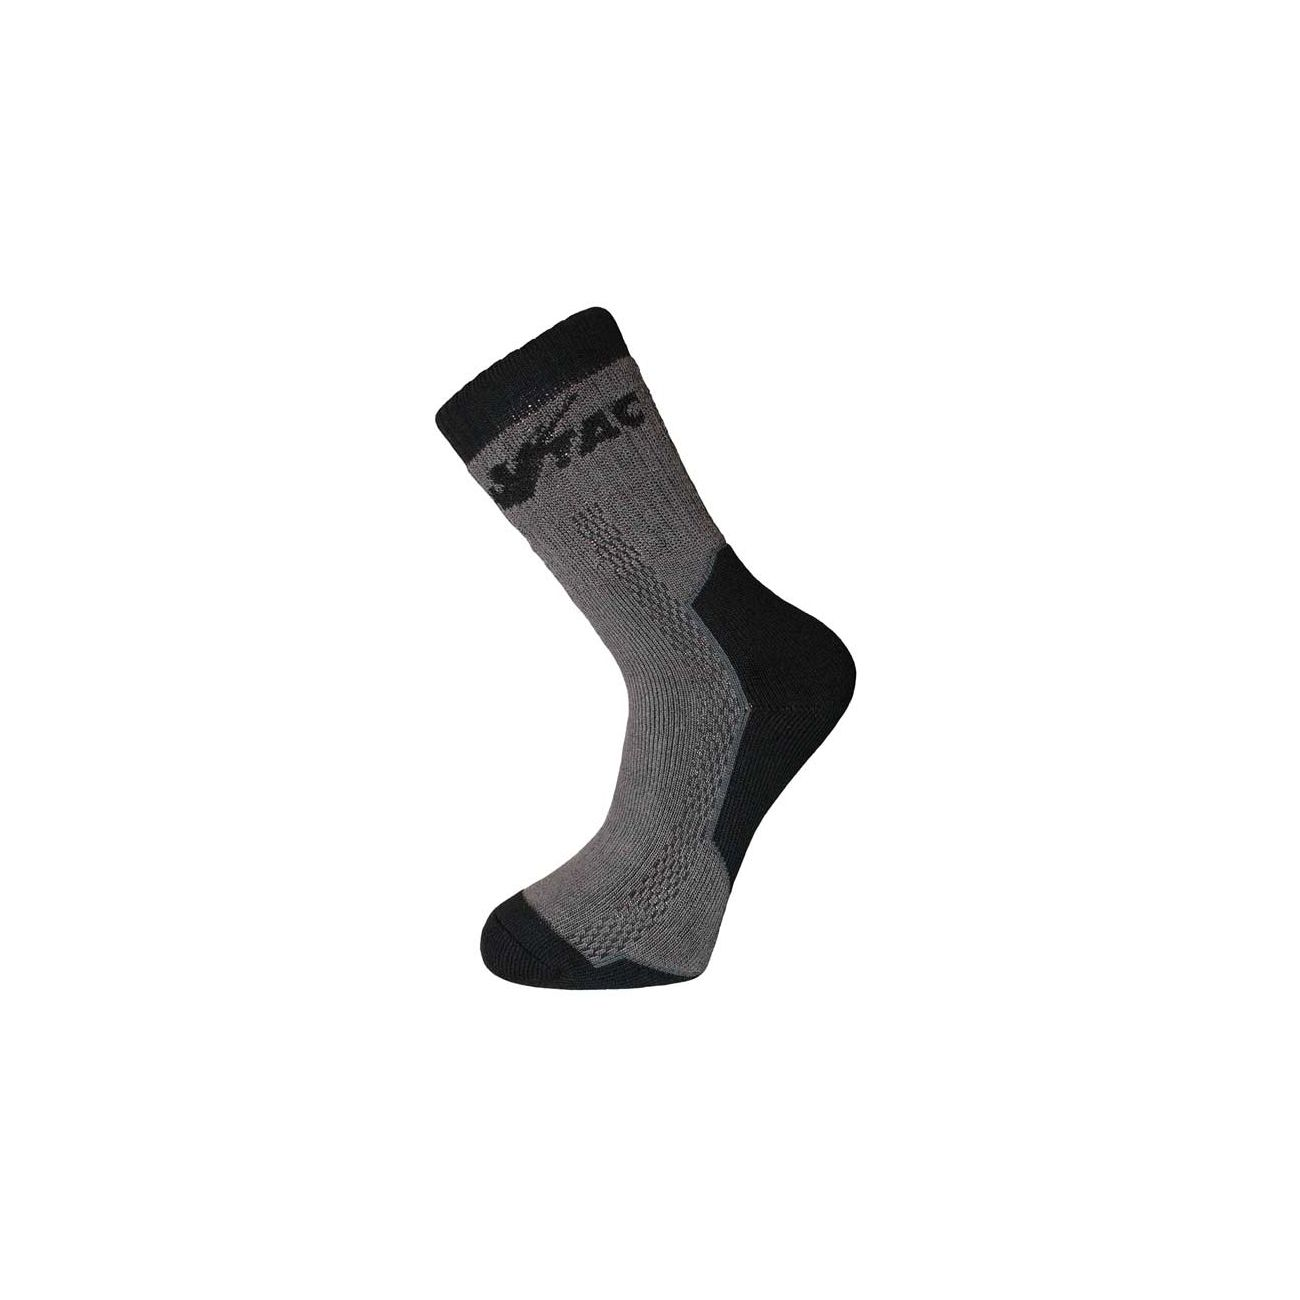 Thermosocken Trooper mit Frotteesohle 0